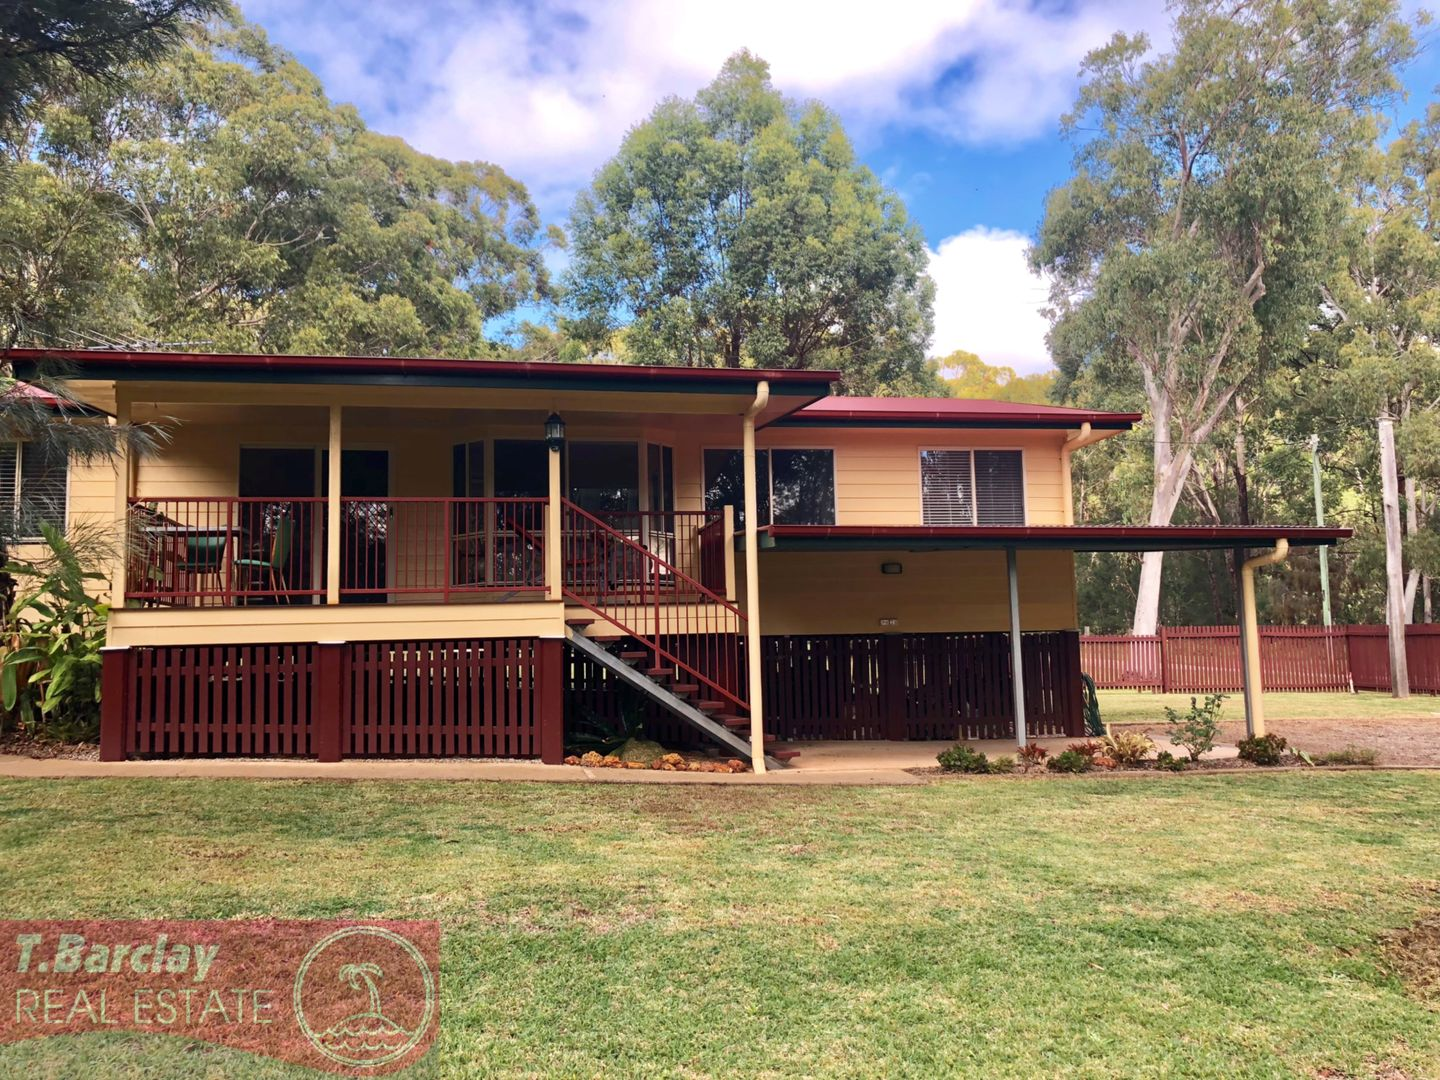 5-7 Bamberry St, Russell Island QLD 4184, Image 2